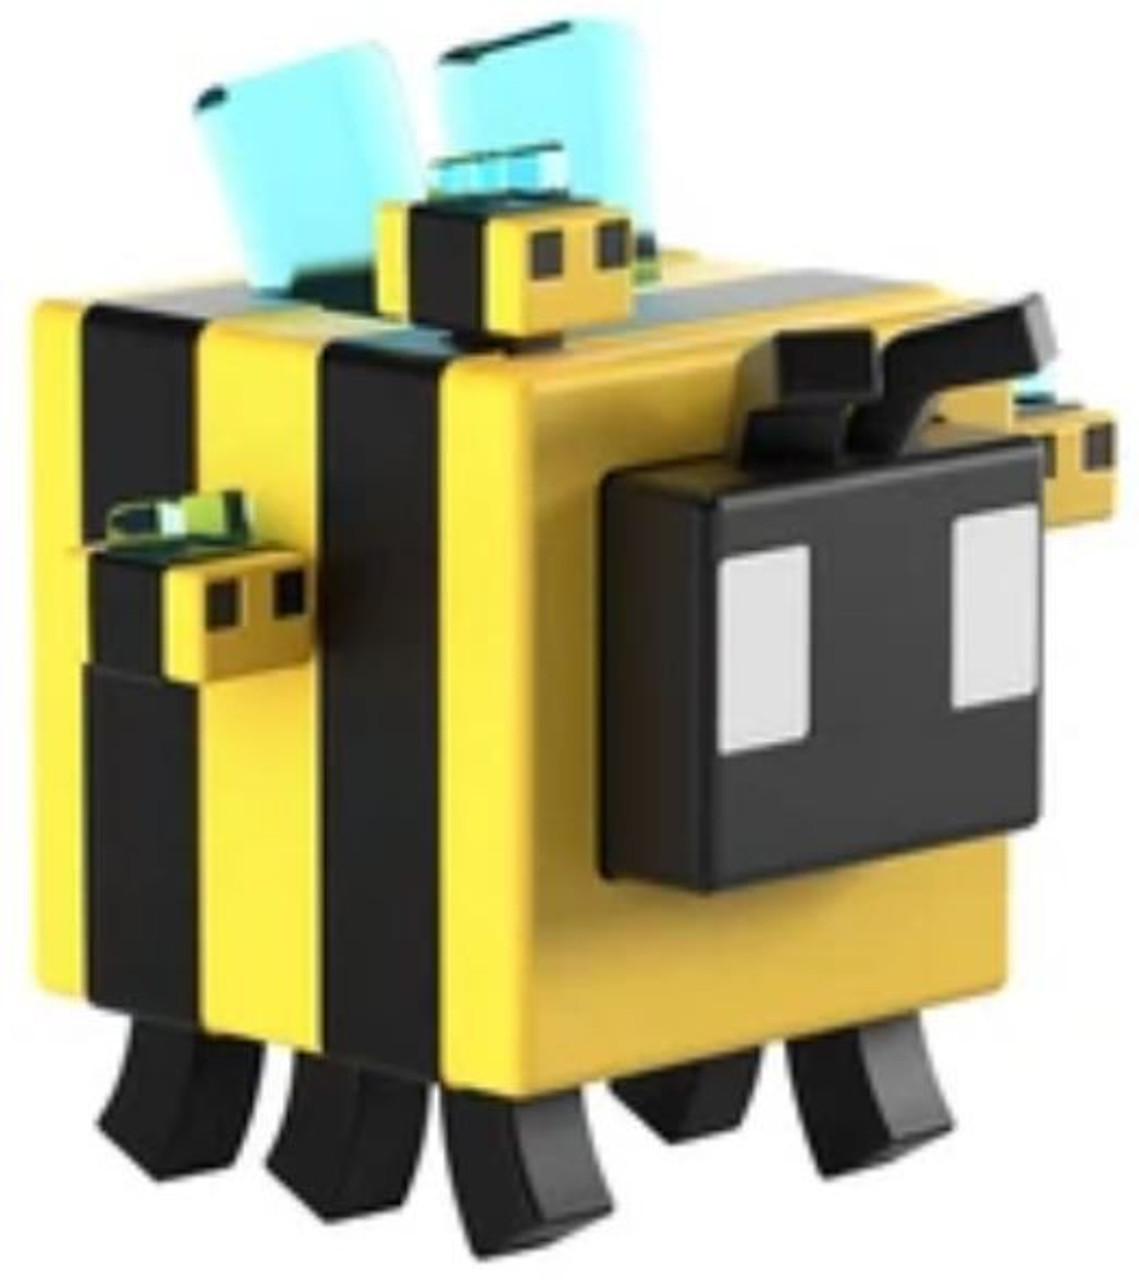 Loose Minecraft Cute Series 18 Minebot Minifigure